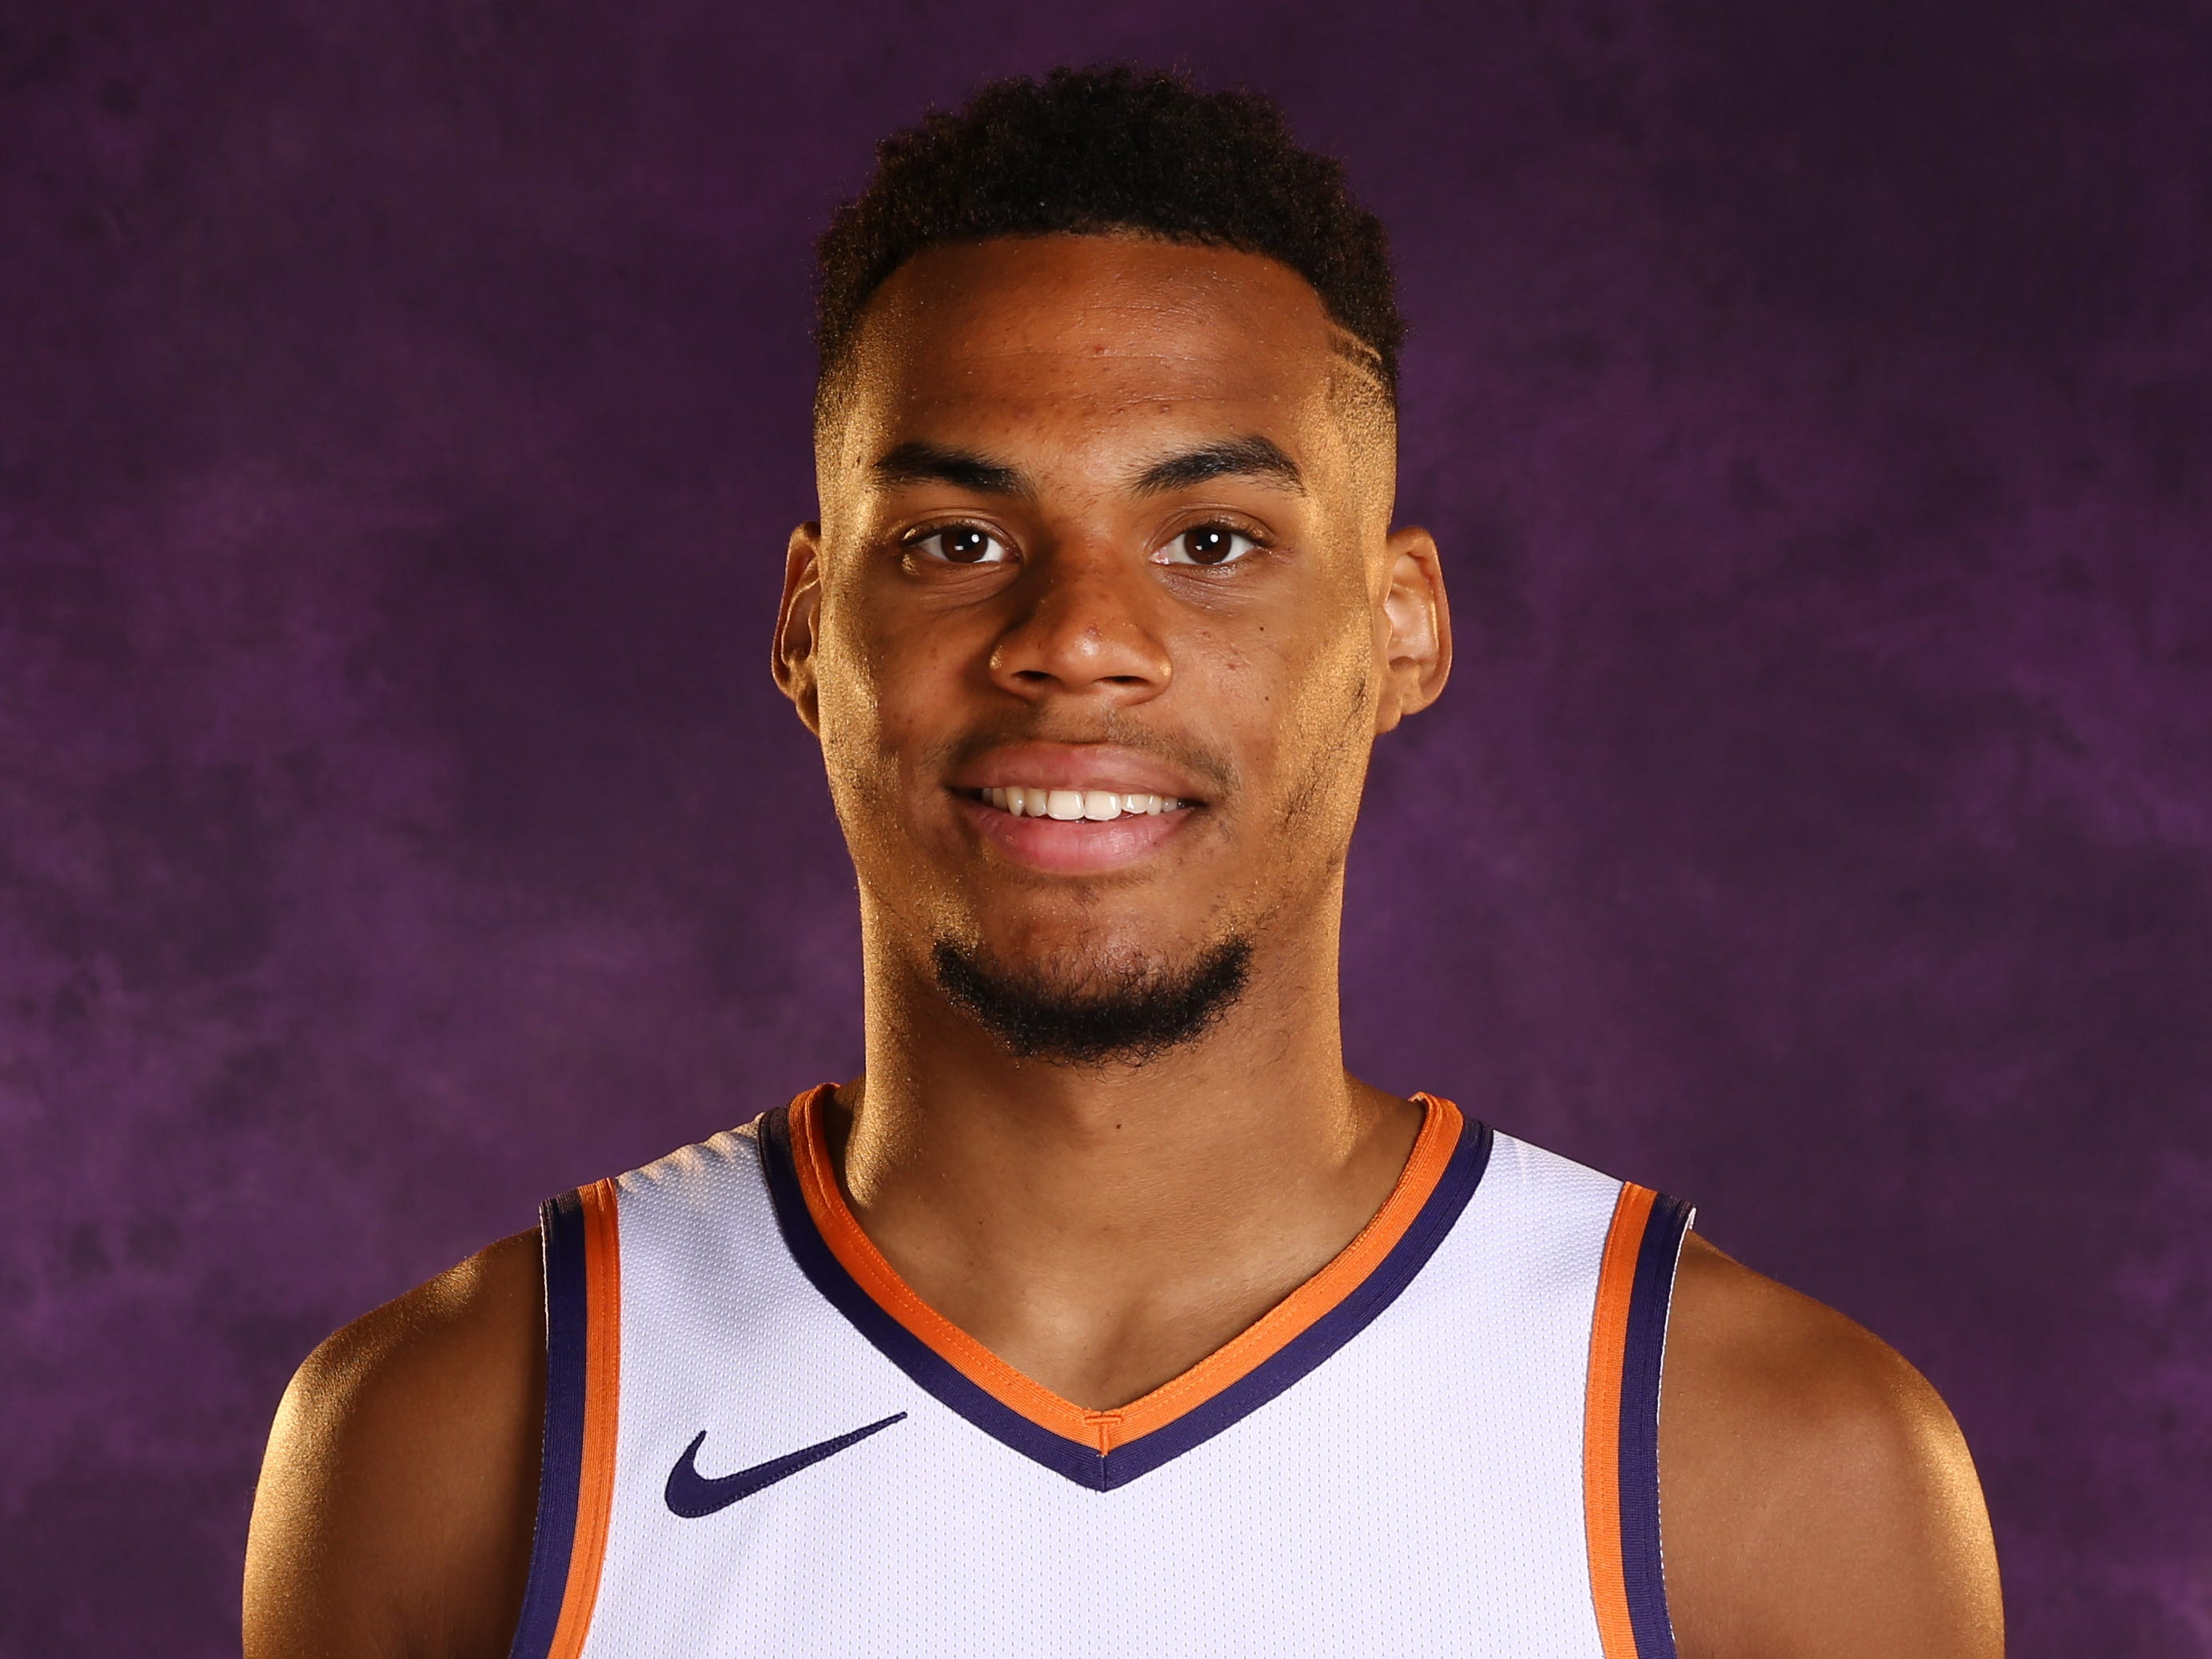 Phoenix Suns guard Elie Okobo during media day at Talking Stick Resort Arena on Aug. 21, 2018, in Phoenix, Ariz.